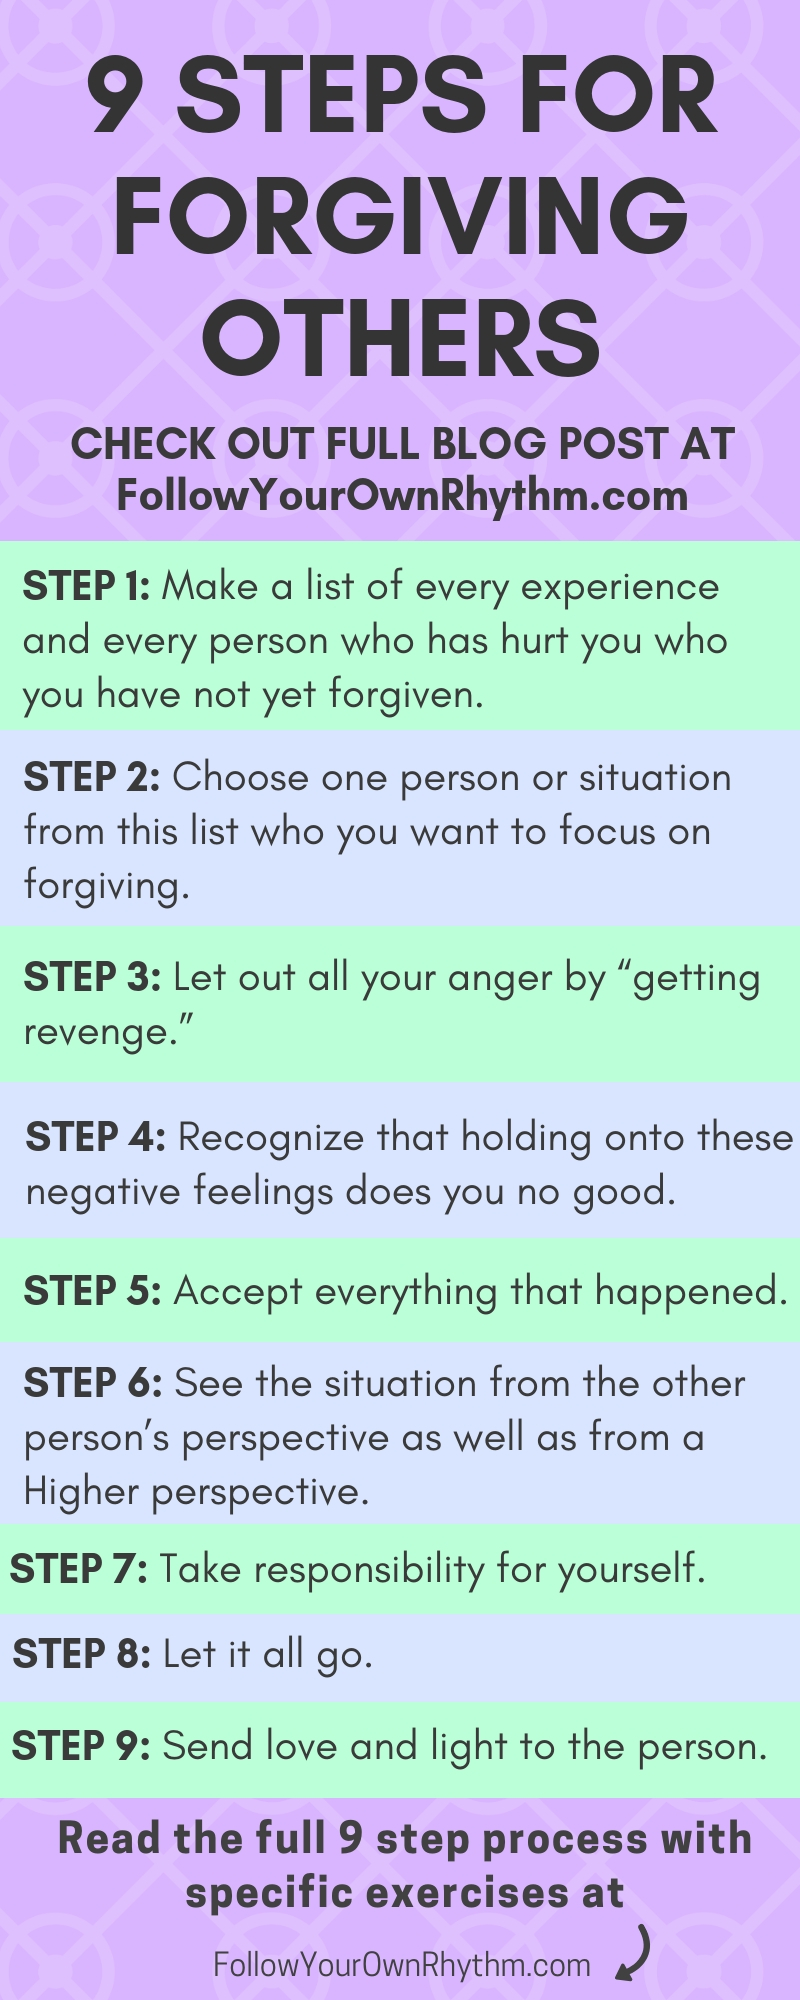 Forgiveness has nothing to do with the person you're forgiving, and everything to do with you. You don't forgive to free the other of what they did, you forgive to FREE YOURSELF.  Forgiveness is about letting go and healing from the past.  Learn the 9 steps that you can take to forgive those who have hurt you so you can release the heaviness that comes from holding a grudge! --personal growth, healing, spirituality, awakening, let go, childhood trauma, emotional pain, freedom, inner peace